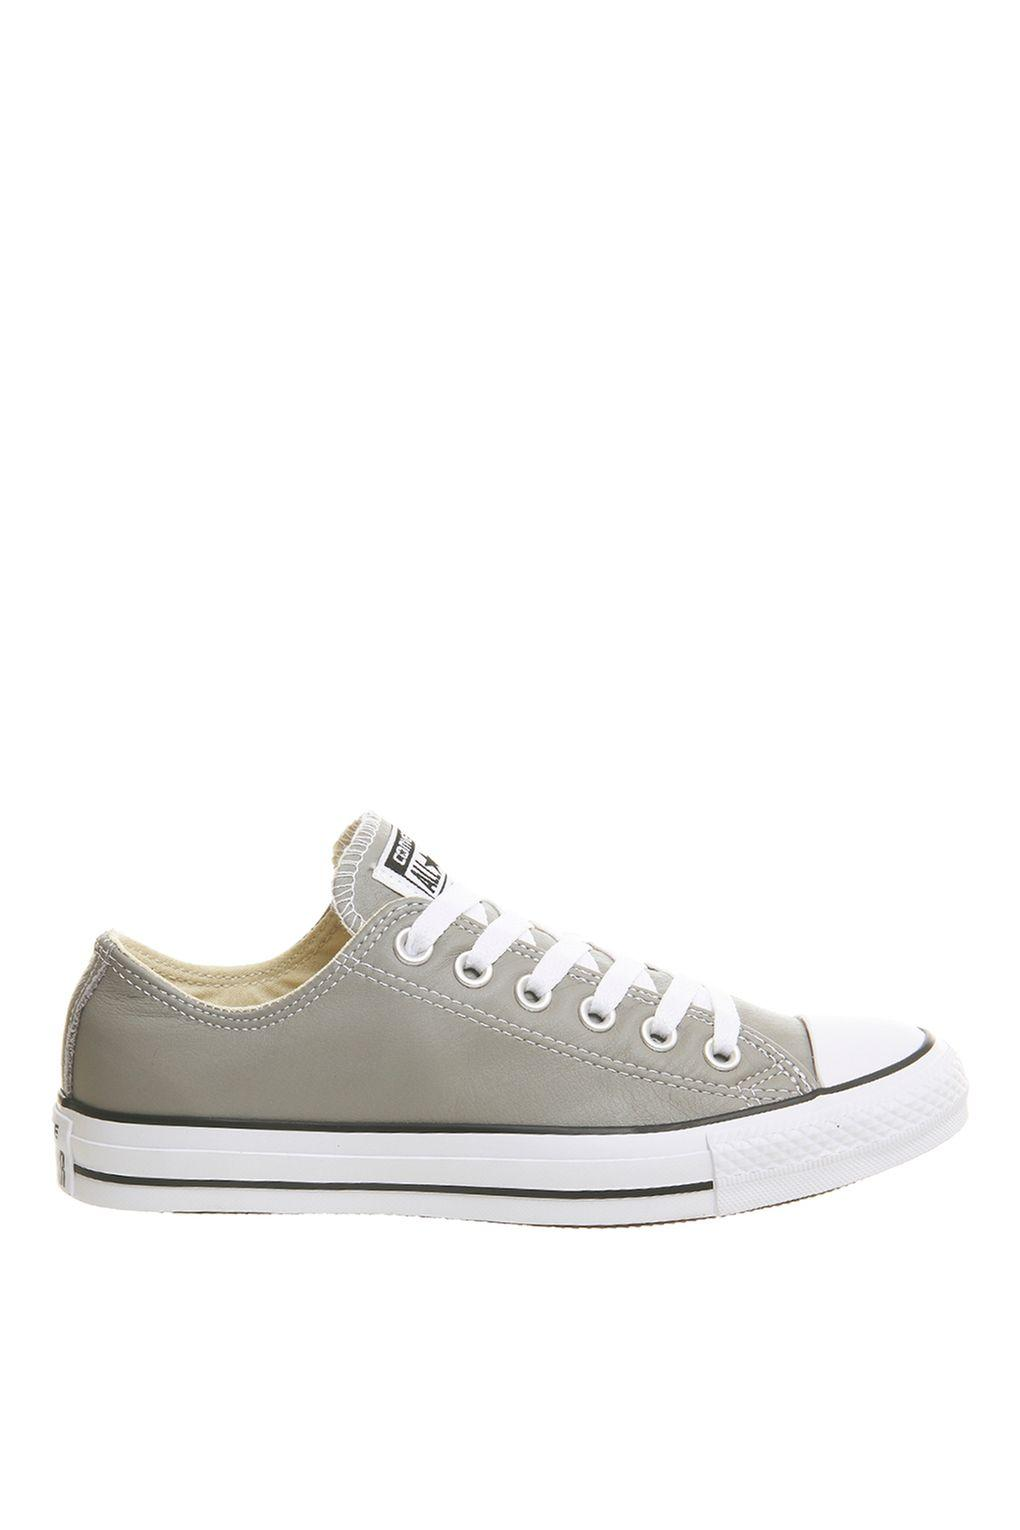 Lyst - Converse All Star Low Top Trainers By Converse in Gray b4758f90e